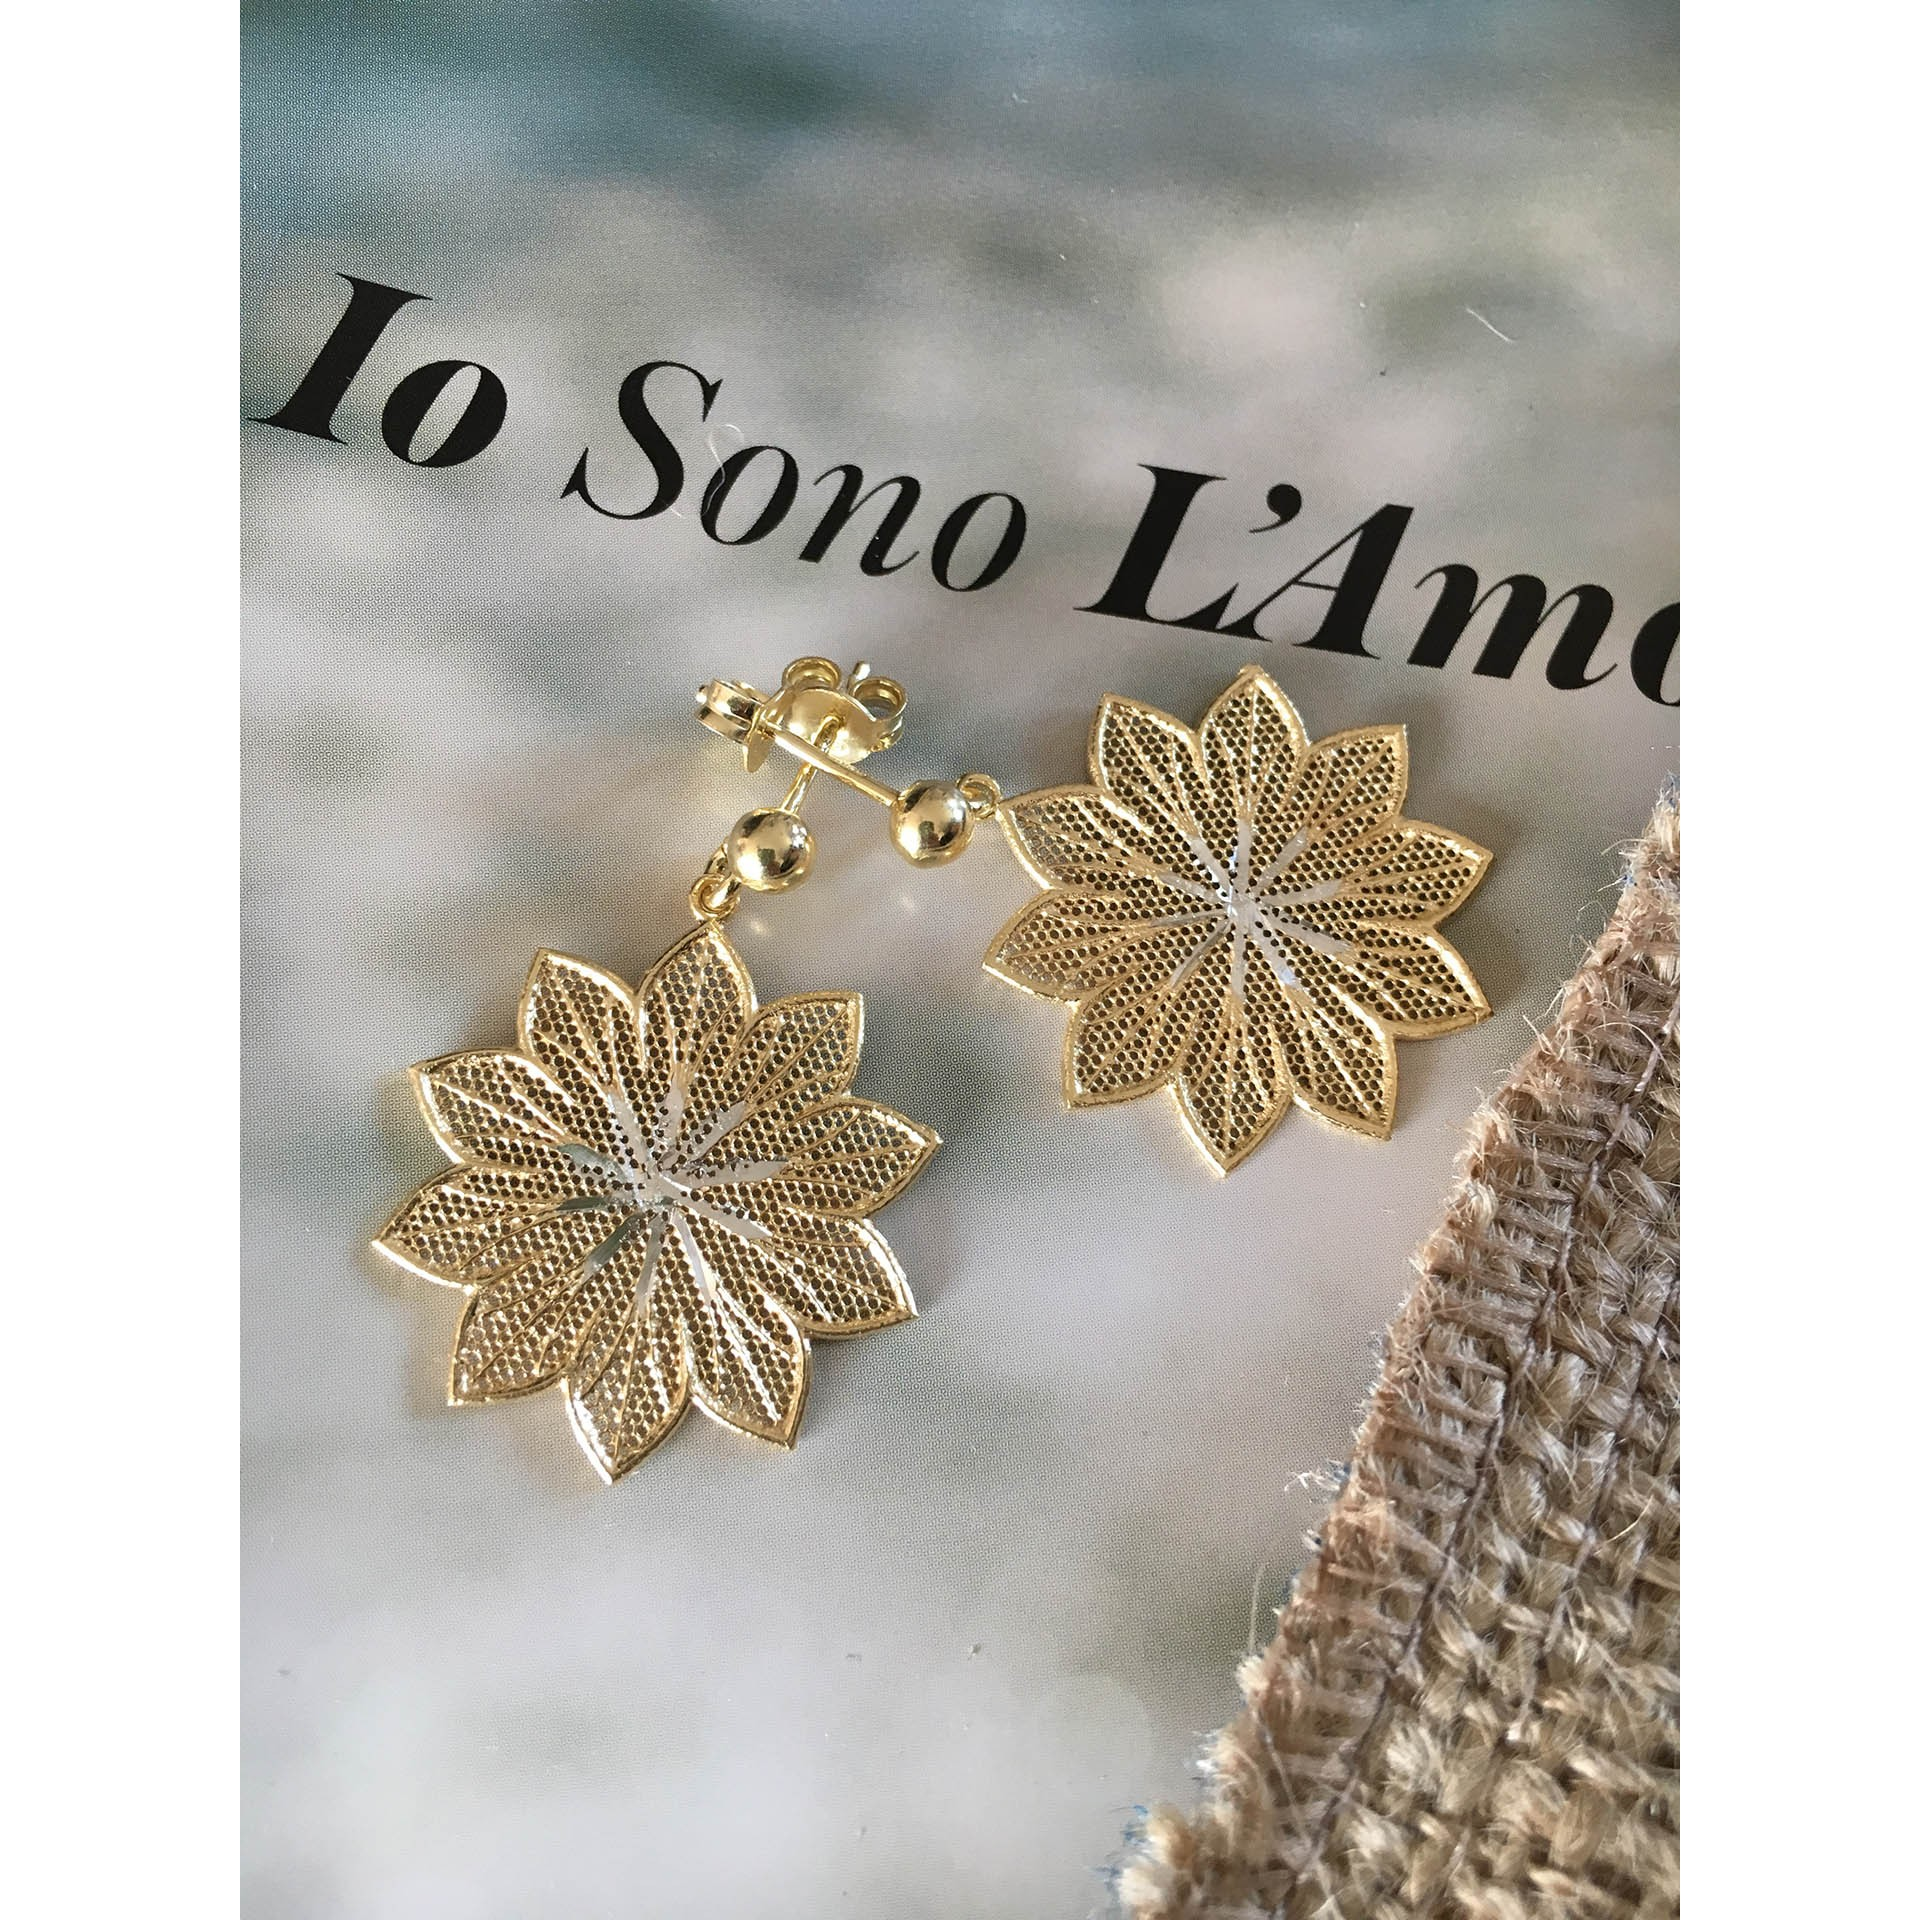 The Lily in Gold silver earrings